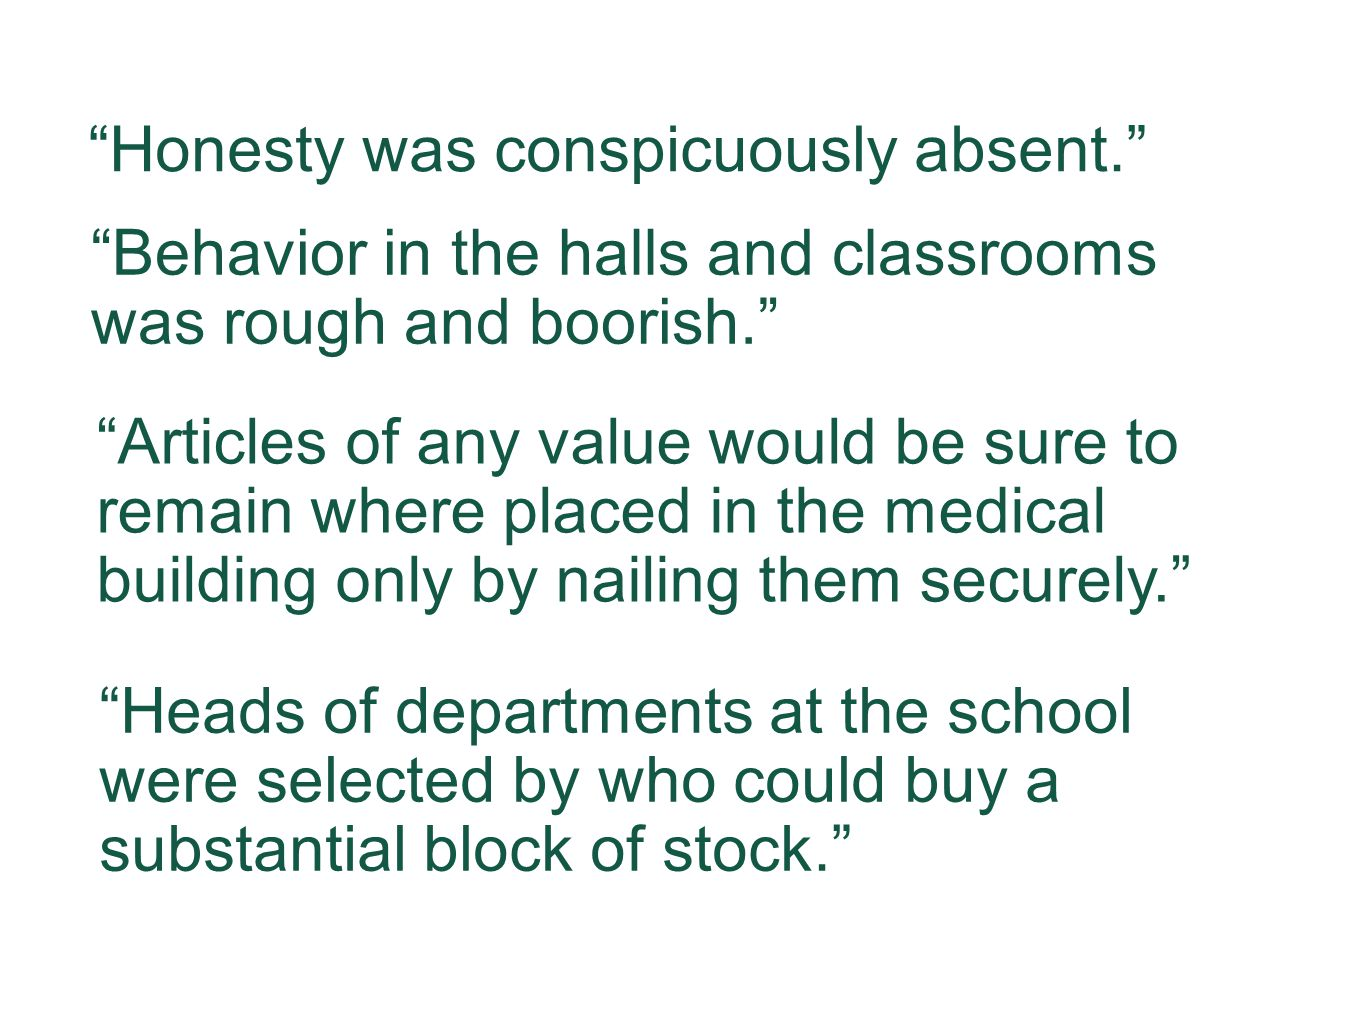 Honesty was conspicuously absent. Articles of any value would be sure to remain where placed in the medical building only by nailing them securely. Behavior in the halls and classrooms was rough and boorish. Heads of departments at the school were selected by who could buy a substantial block of stock.